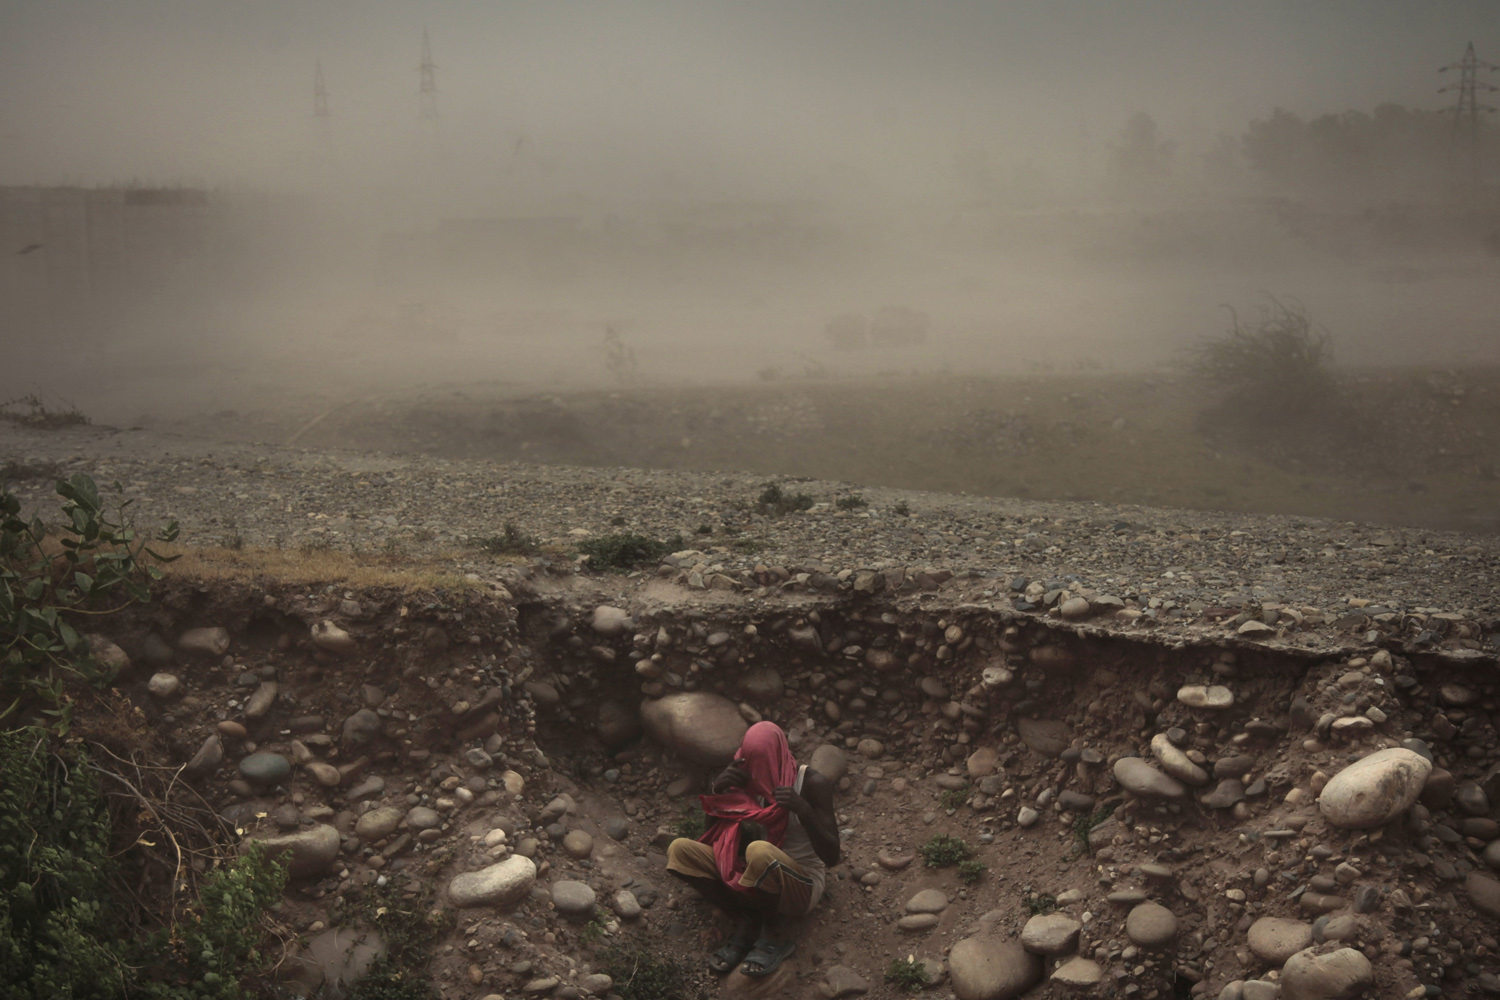 Jun. 16, 2014. An Indian man sits beneath the road level with his face covered during a powerful dust storm in Jammu, India.